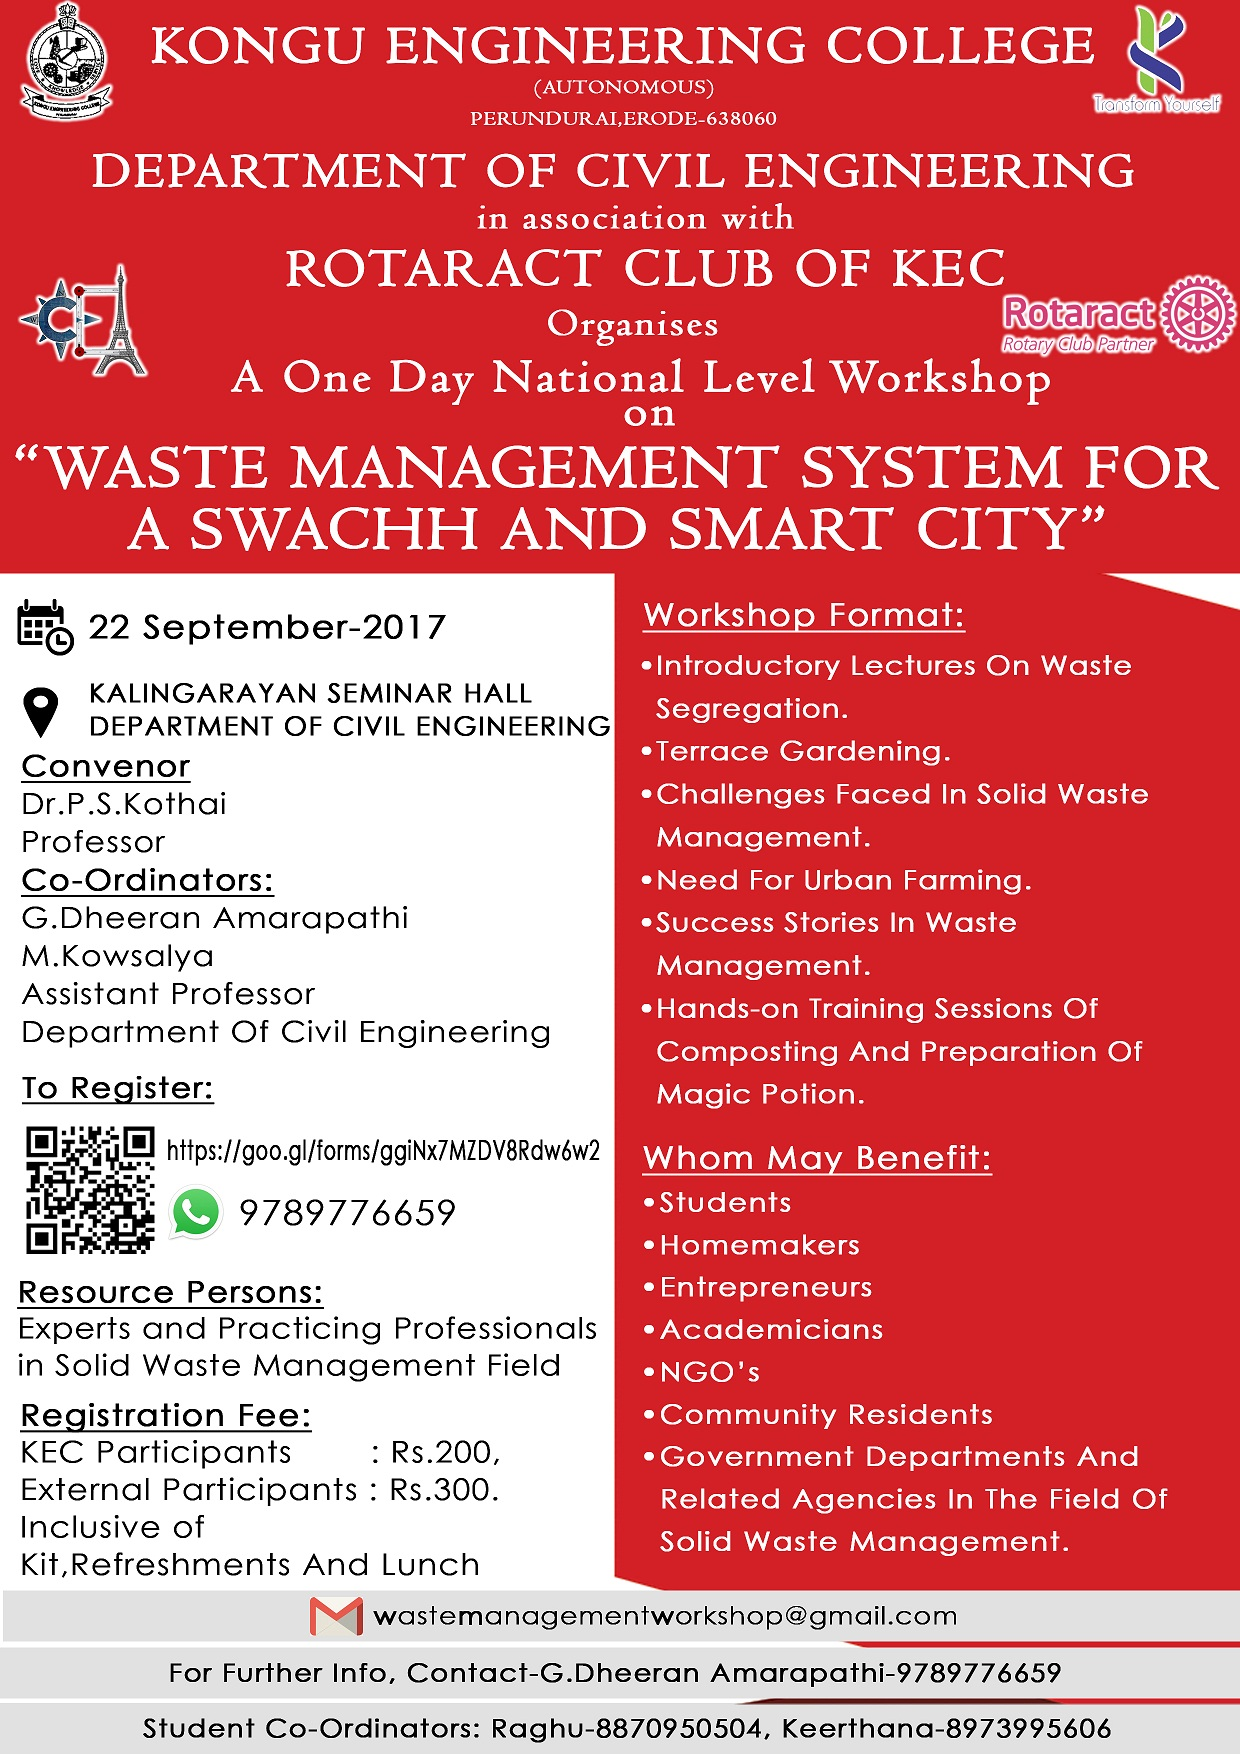 Workshop on Waste Management System for a Swachh and Smart City